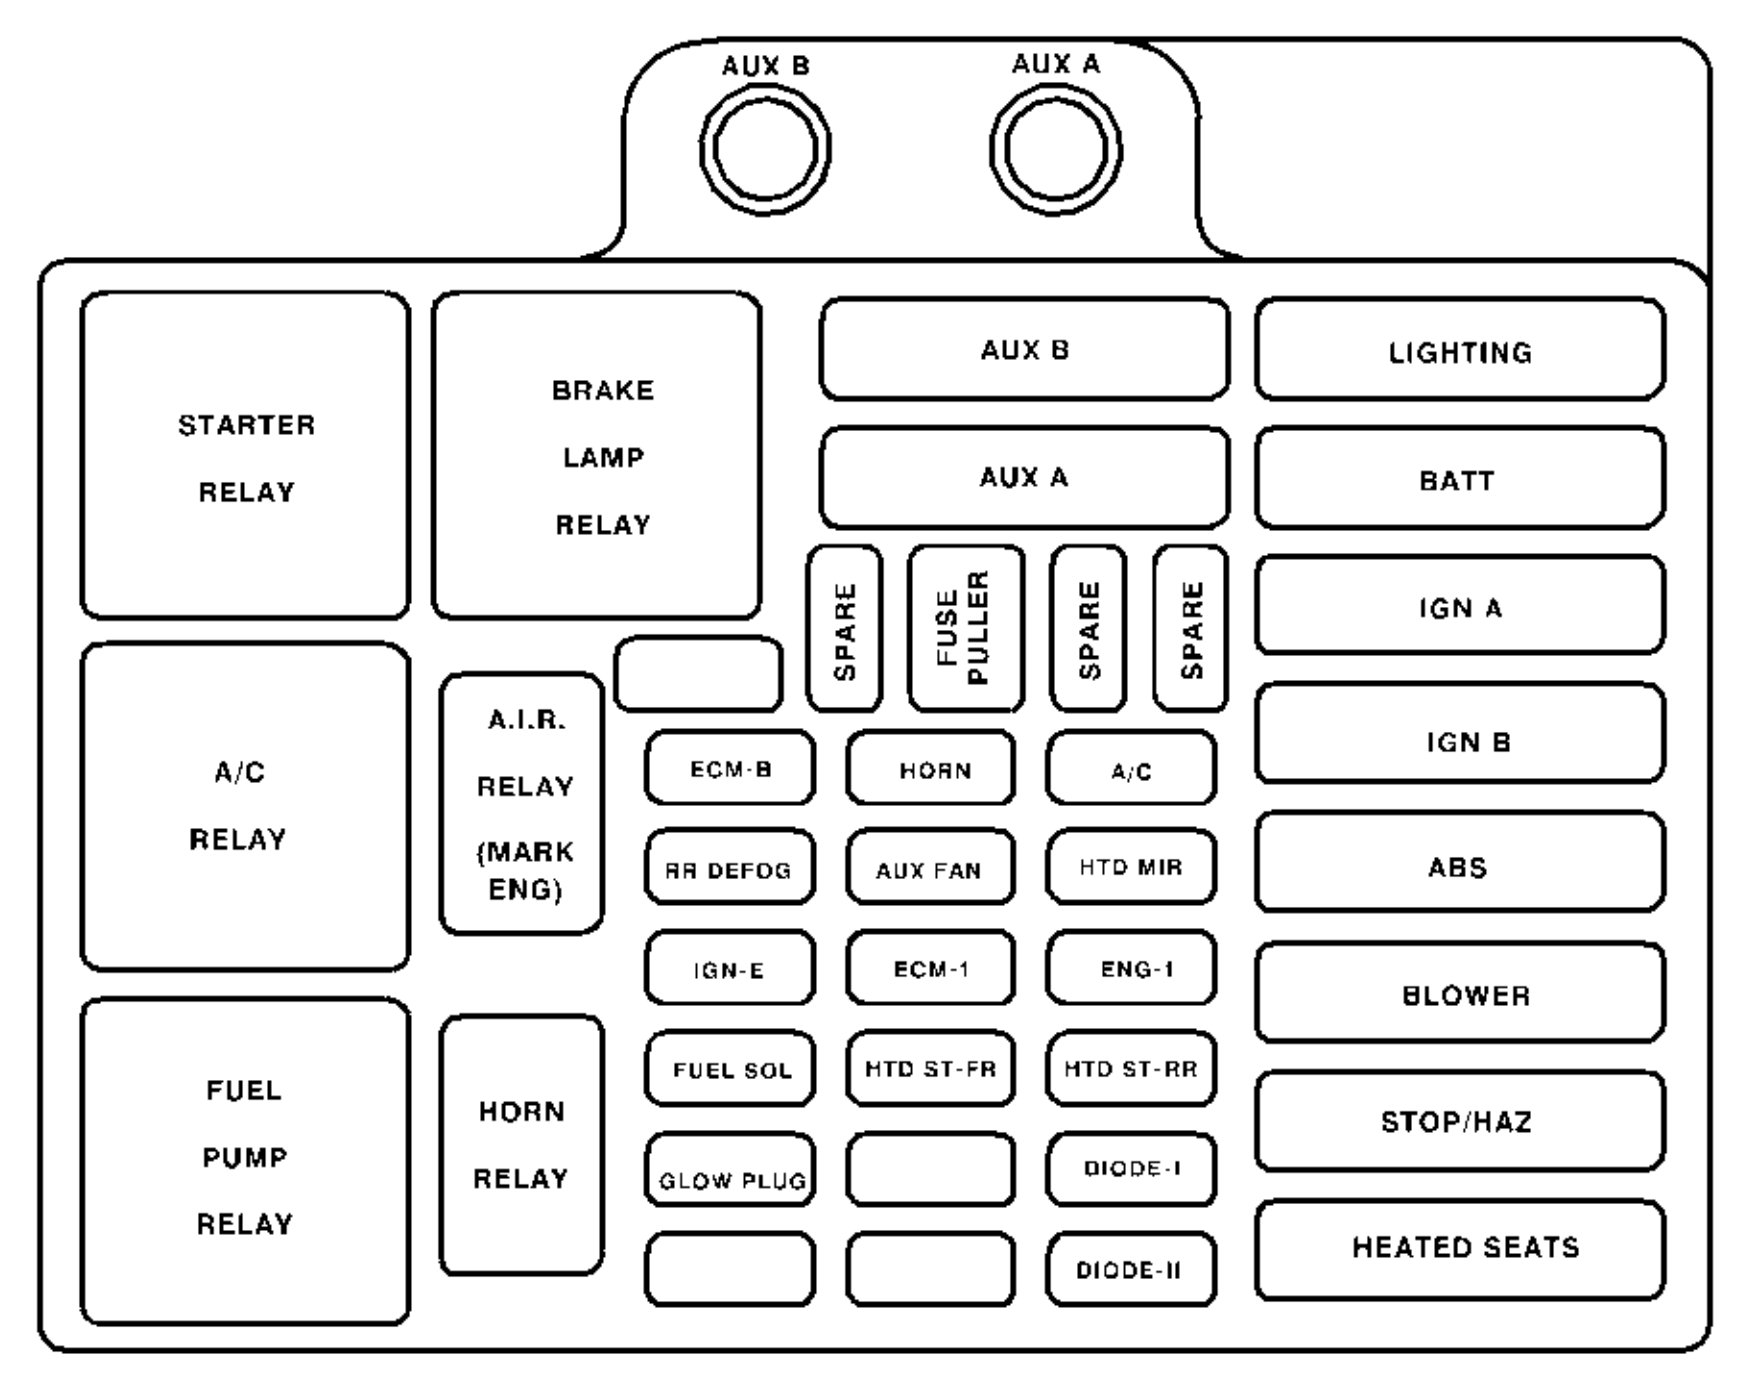 Chevrolet Suburban Fuse Box Unerhood Fuses Relay Center on 1999 Acura Integra Fuse Box Diagram